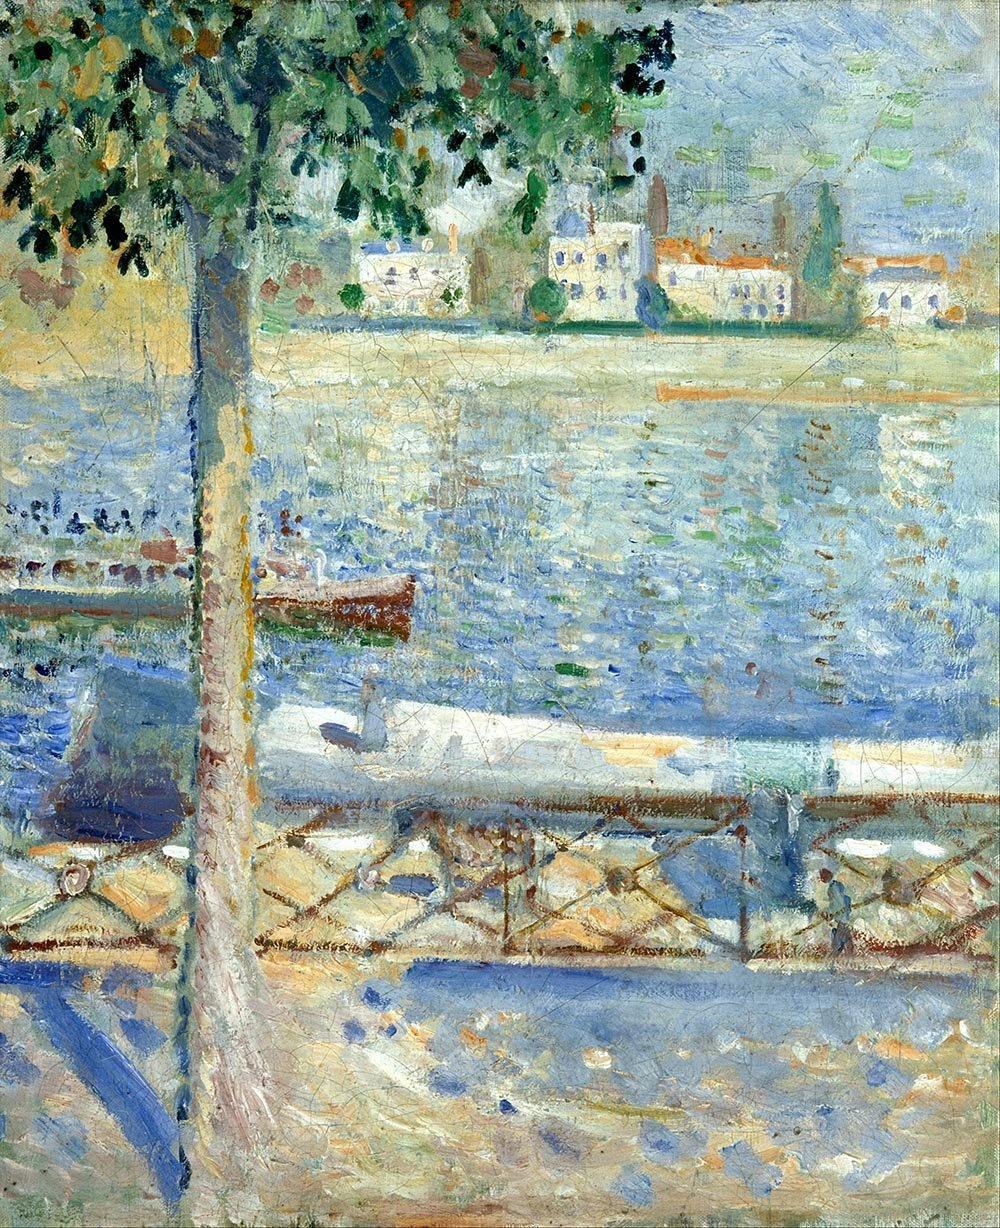 100% Hand Painted Oil on Canvas - Munch - The Seine at St Cloud - 30x40 Inch